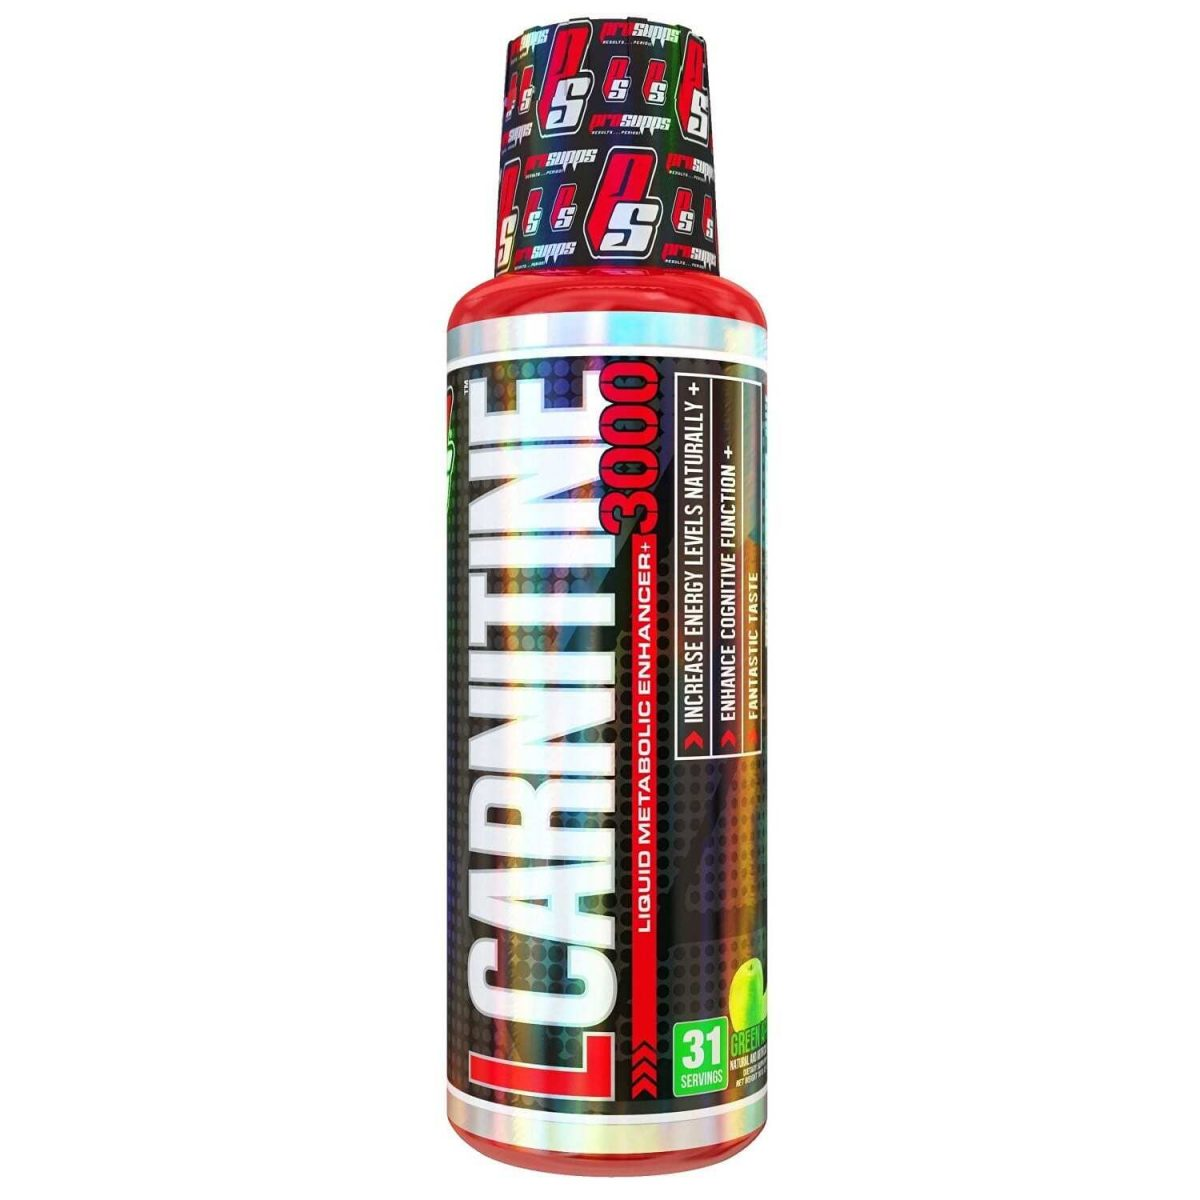 Pro Supps L-Carnitine 3000 - Green Apple - 16 fl oz (473 ml)